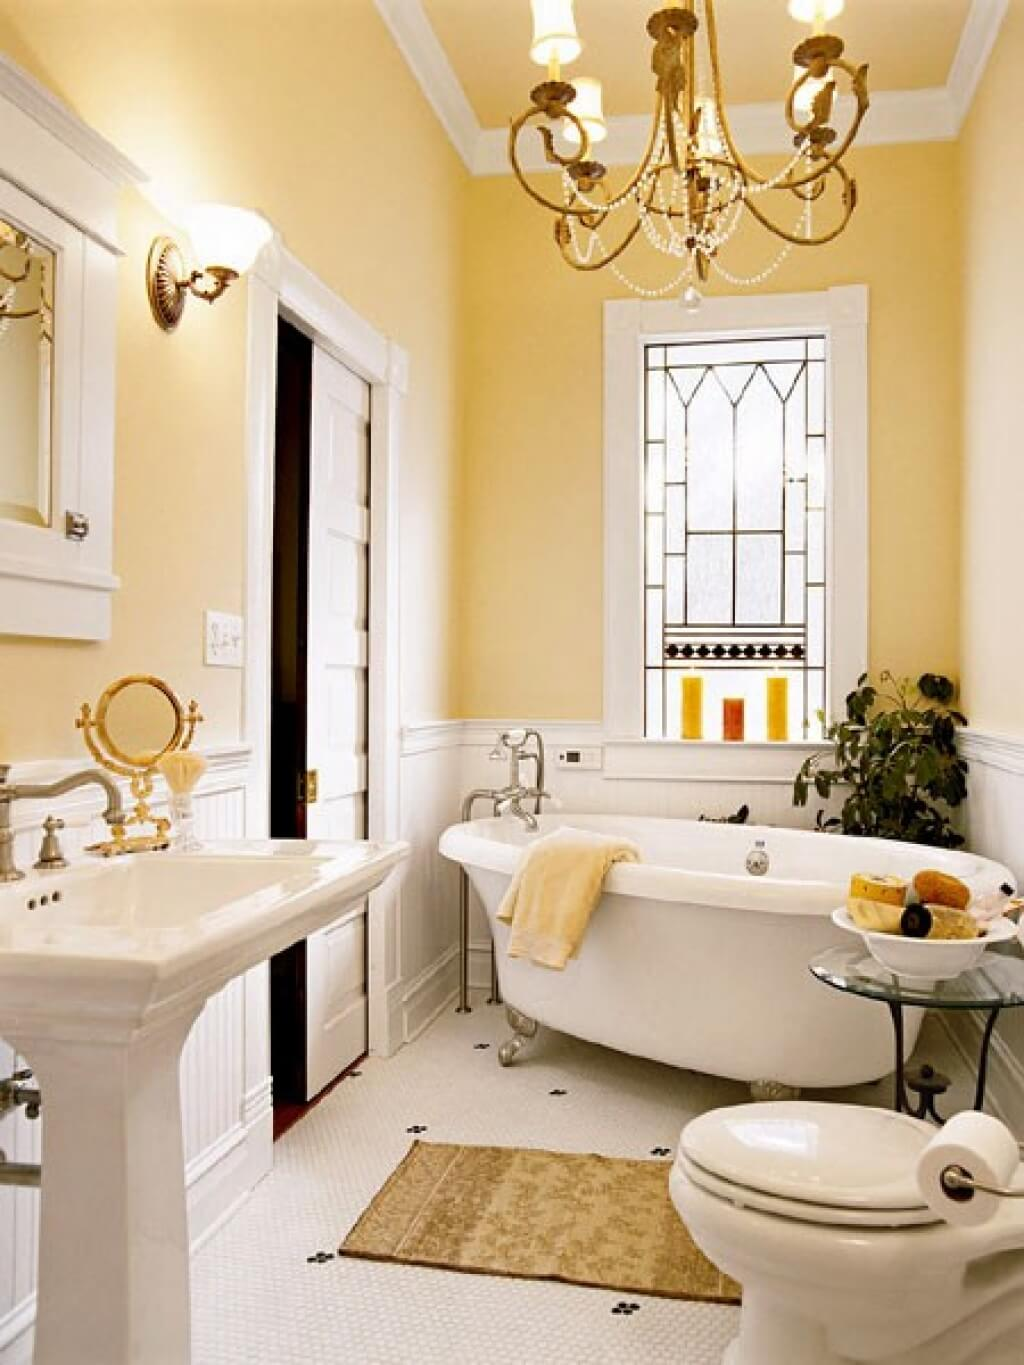 32 Best Small Bathroom Design Ideas and Decorations for 2017 on Bathroom Ideas Small  id=25179